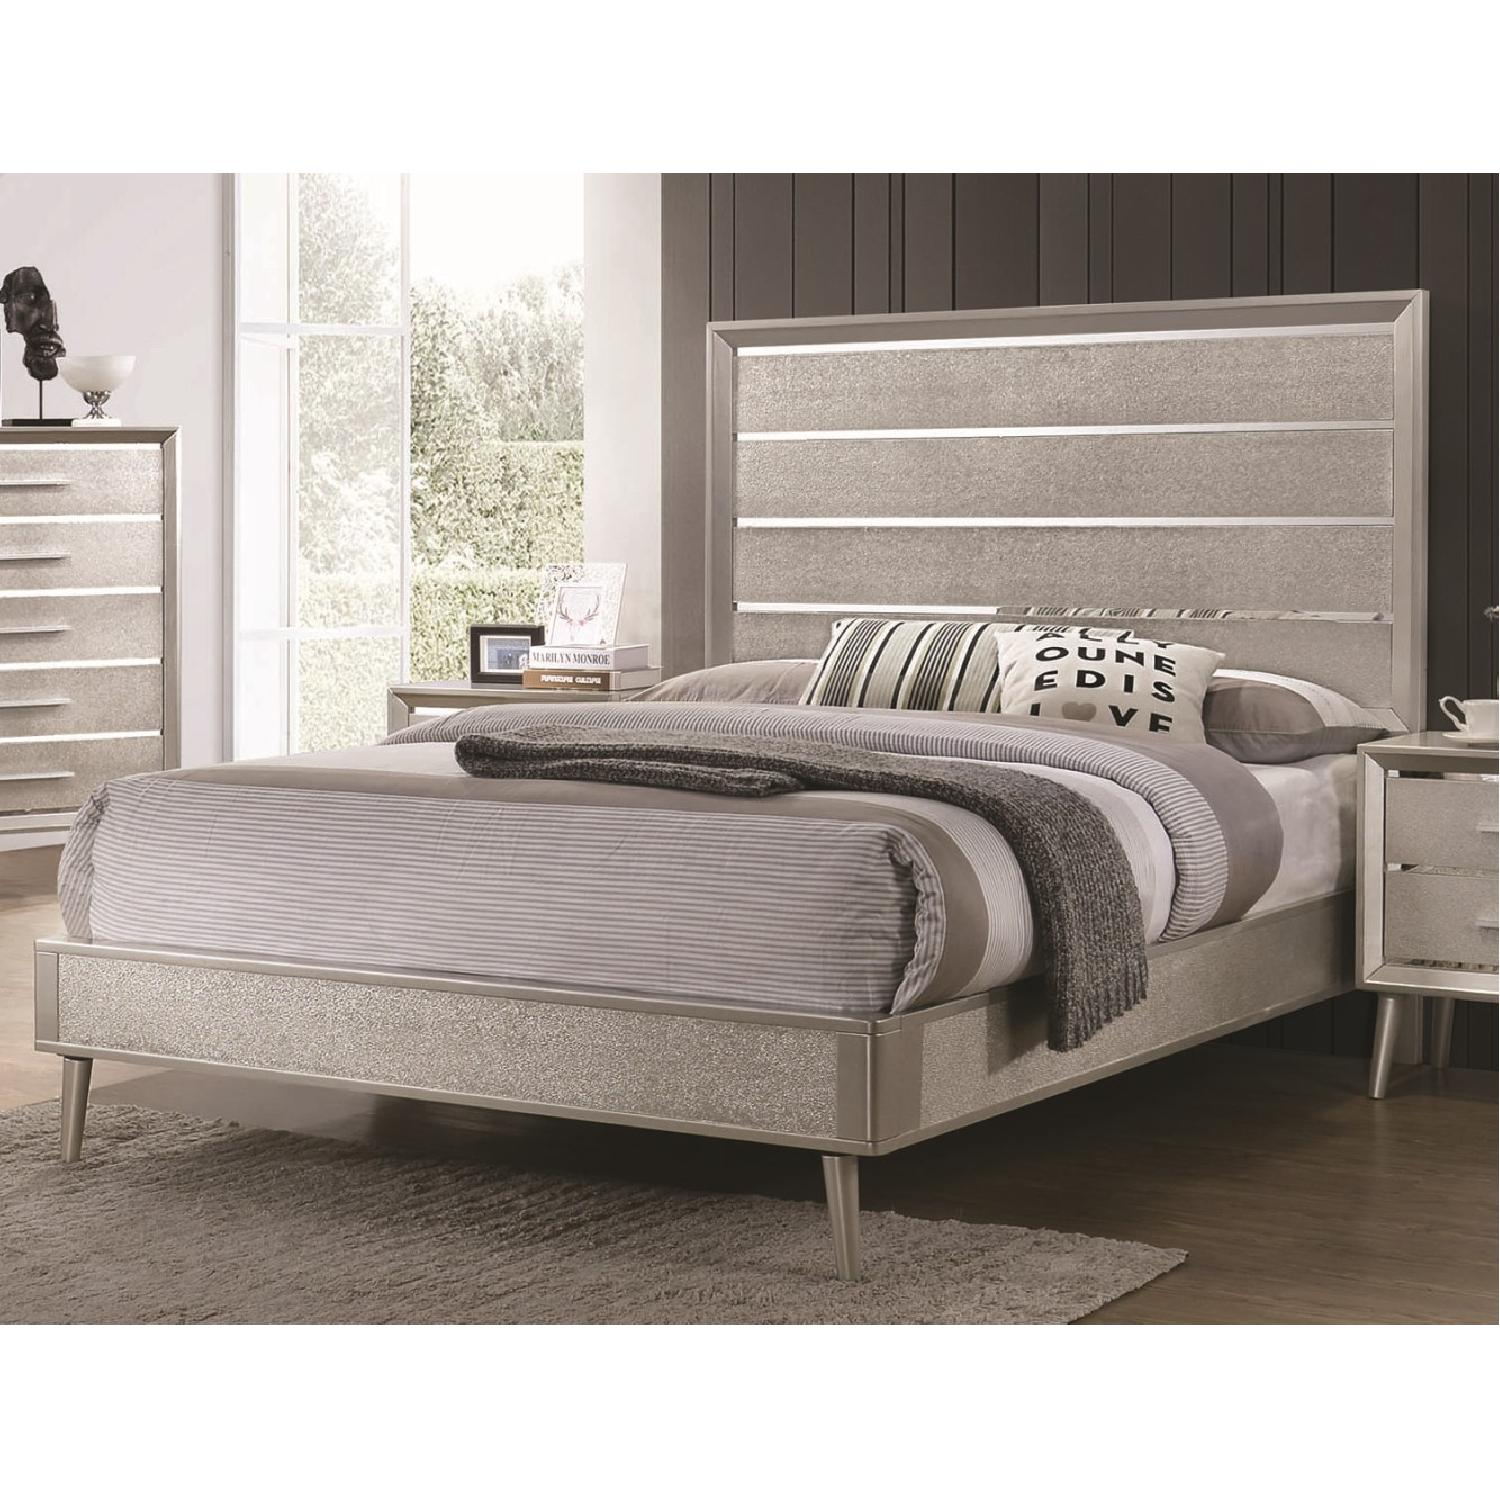 Mid Century Style Twin Bed in Metallic Silver Glitter Design - image-4